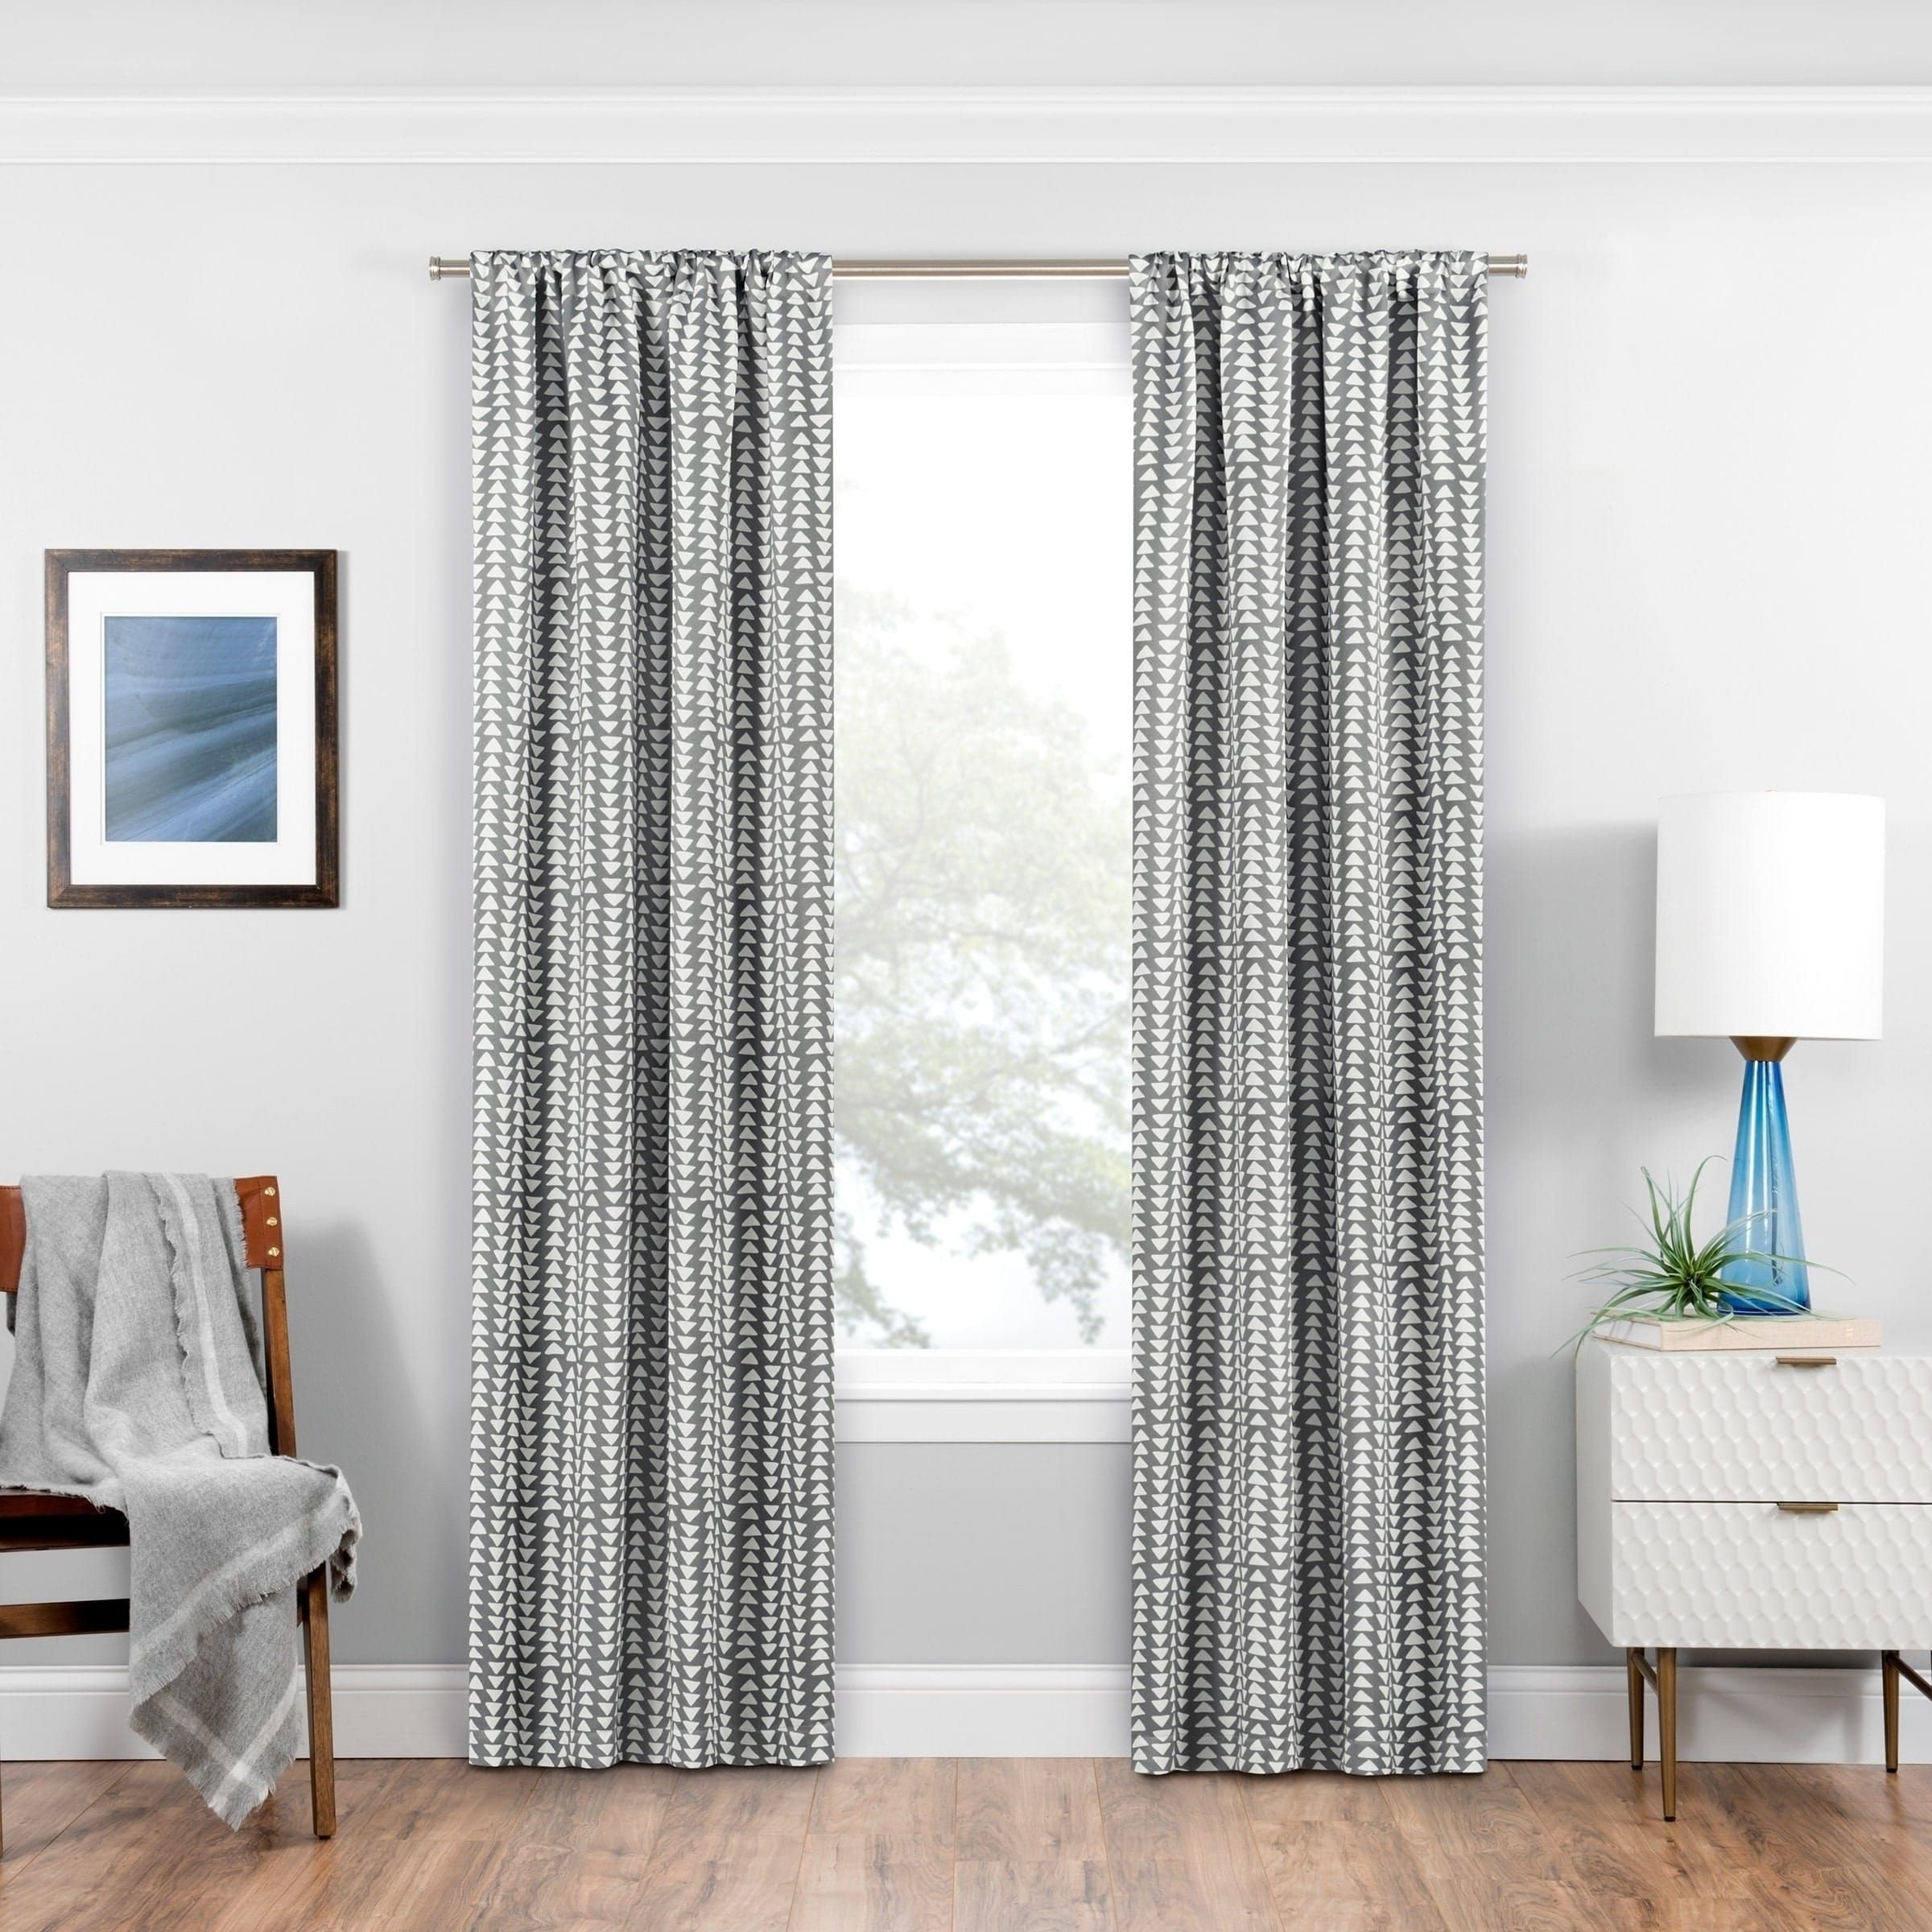 Blackout Drapes for Bedroom Best Of Eclipse Naya Blackout Window Curtain Panel 95 Inches Sky